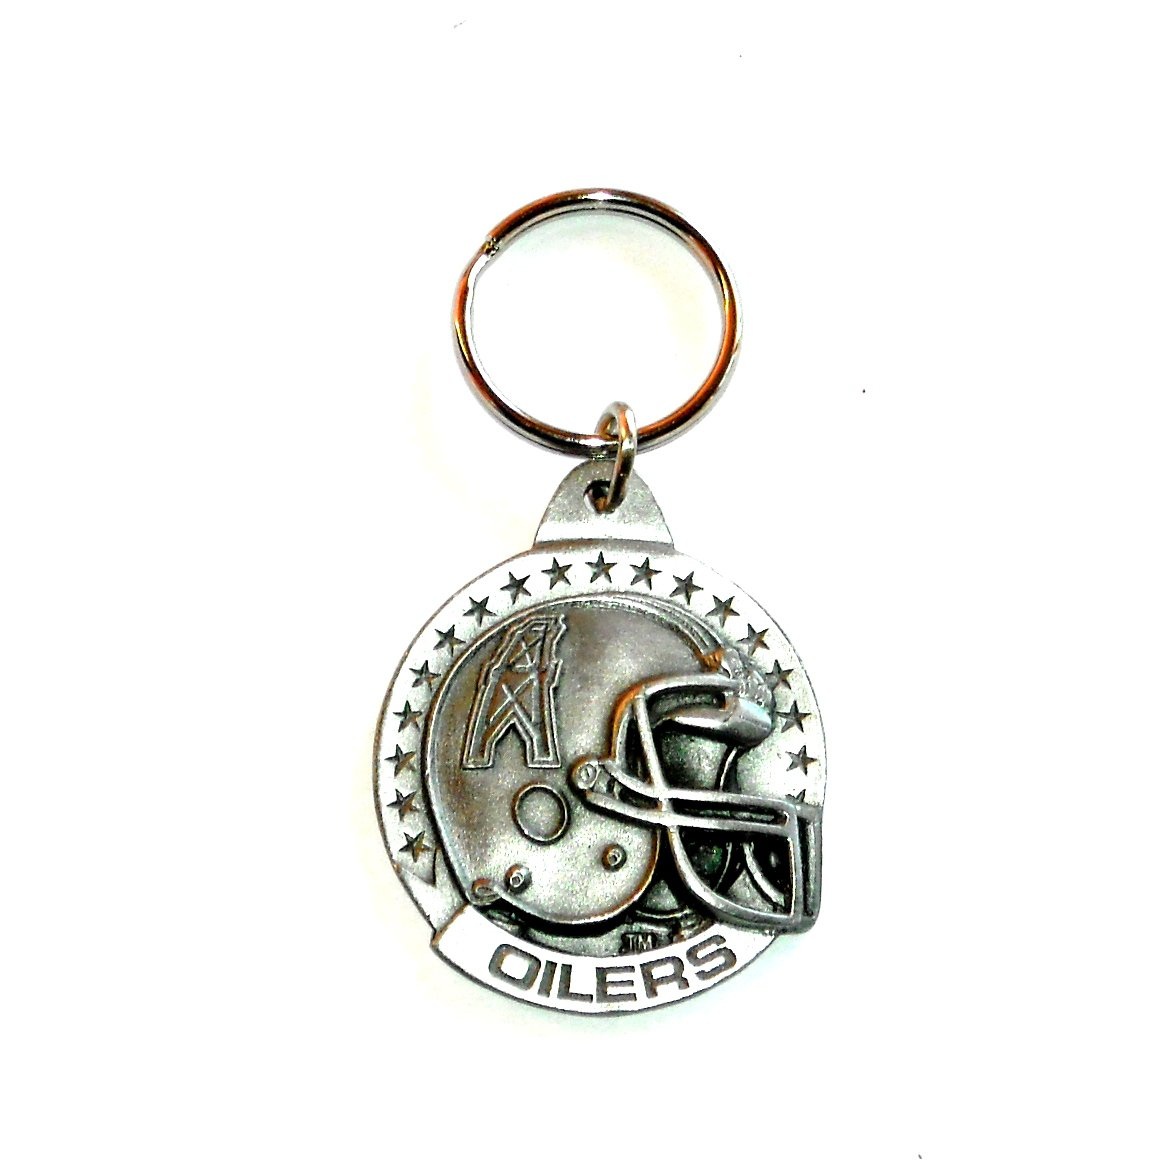 Oilers Team NFL Retired Pewter Fob Key Ring Keychain